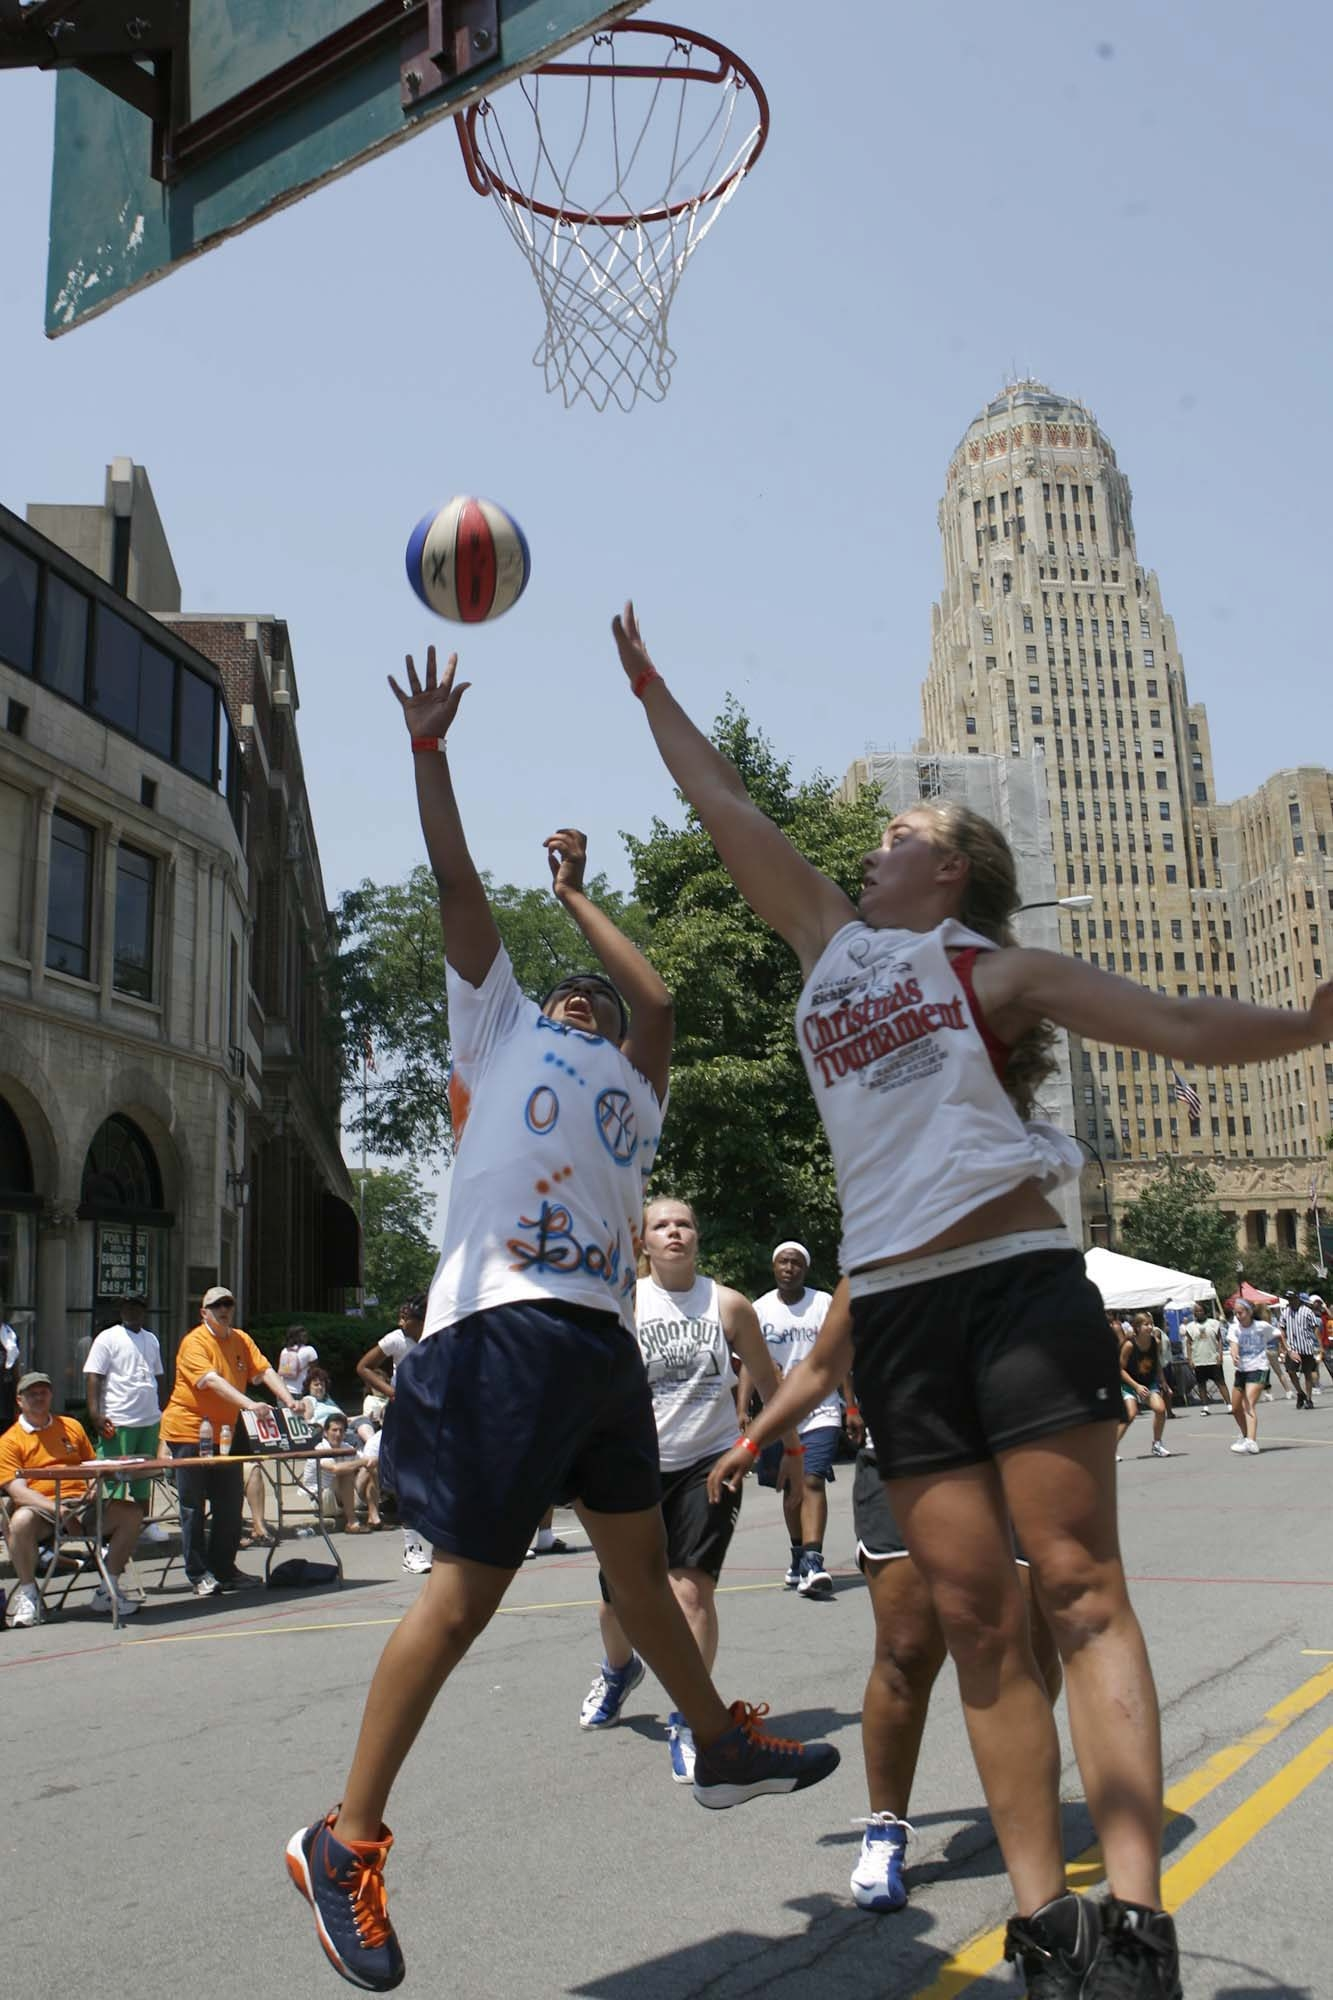 The Gus Macker tourney, played in Niagara Square for the past 23 years, is moving to Darien Lake Theme Park.